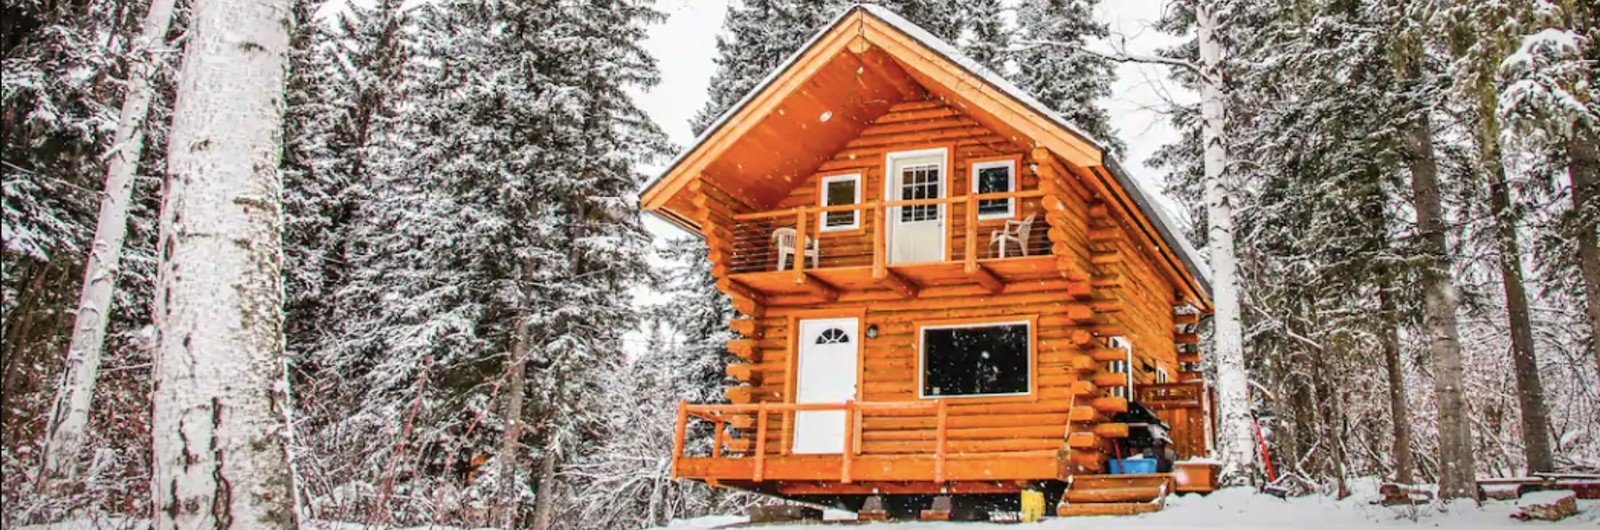 9 Remote Cabins For Riding Out the Holidays